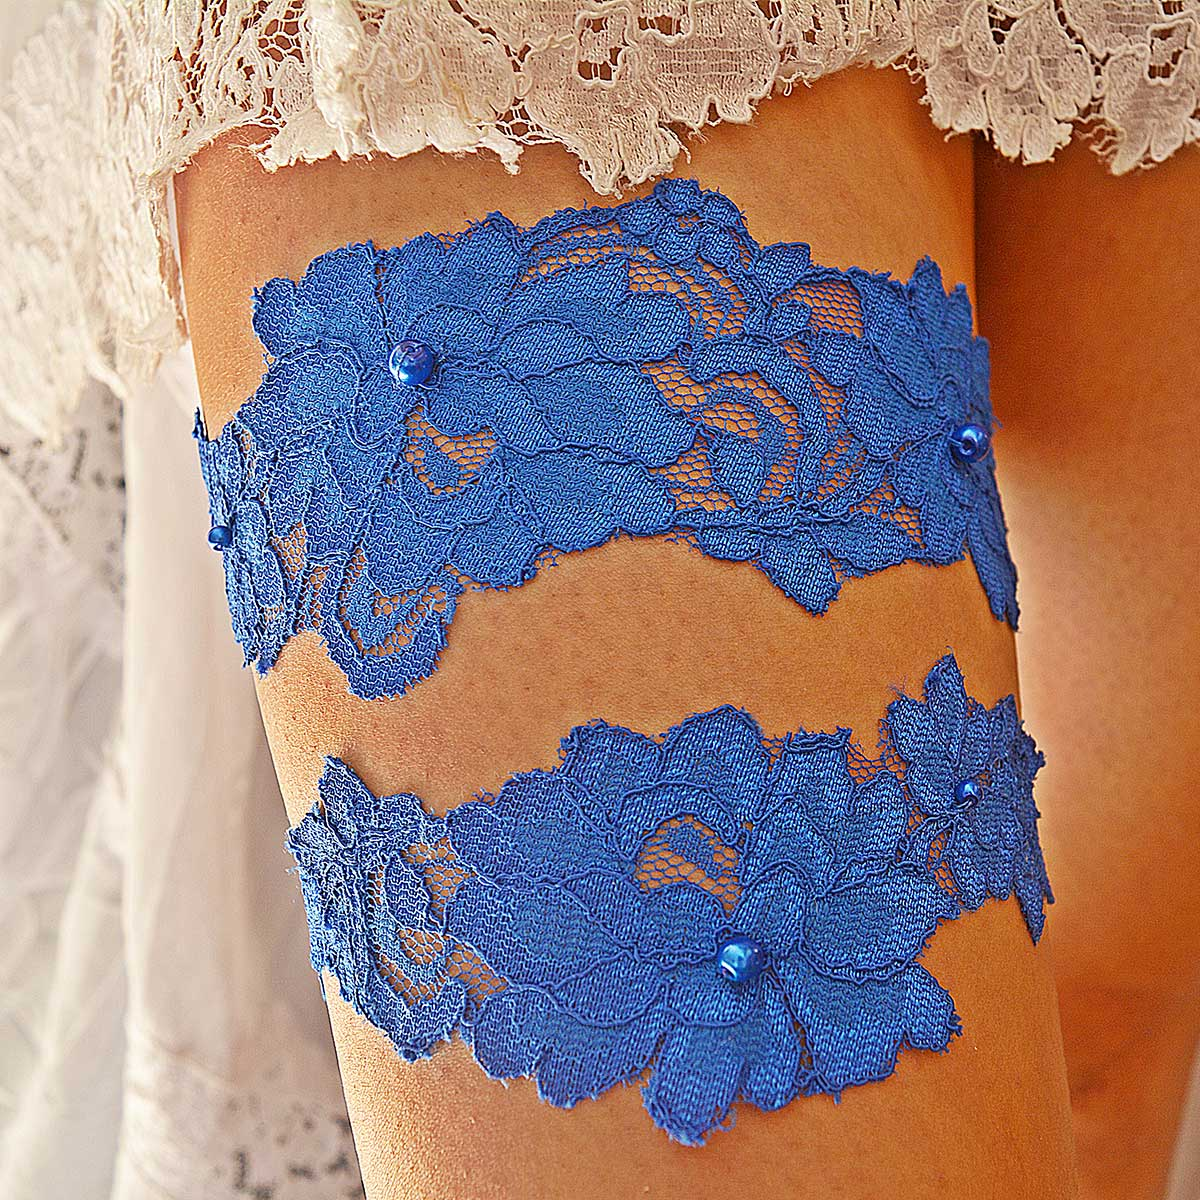 Royal Blue Bridal Garter With Pearls & Flower Lace Applique - Wedding Garter - SuzannaM Designs